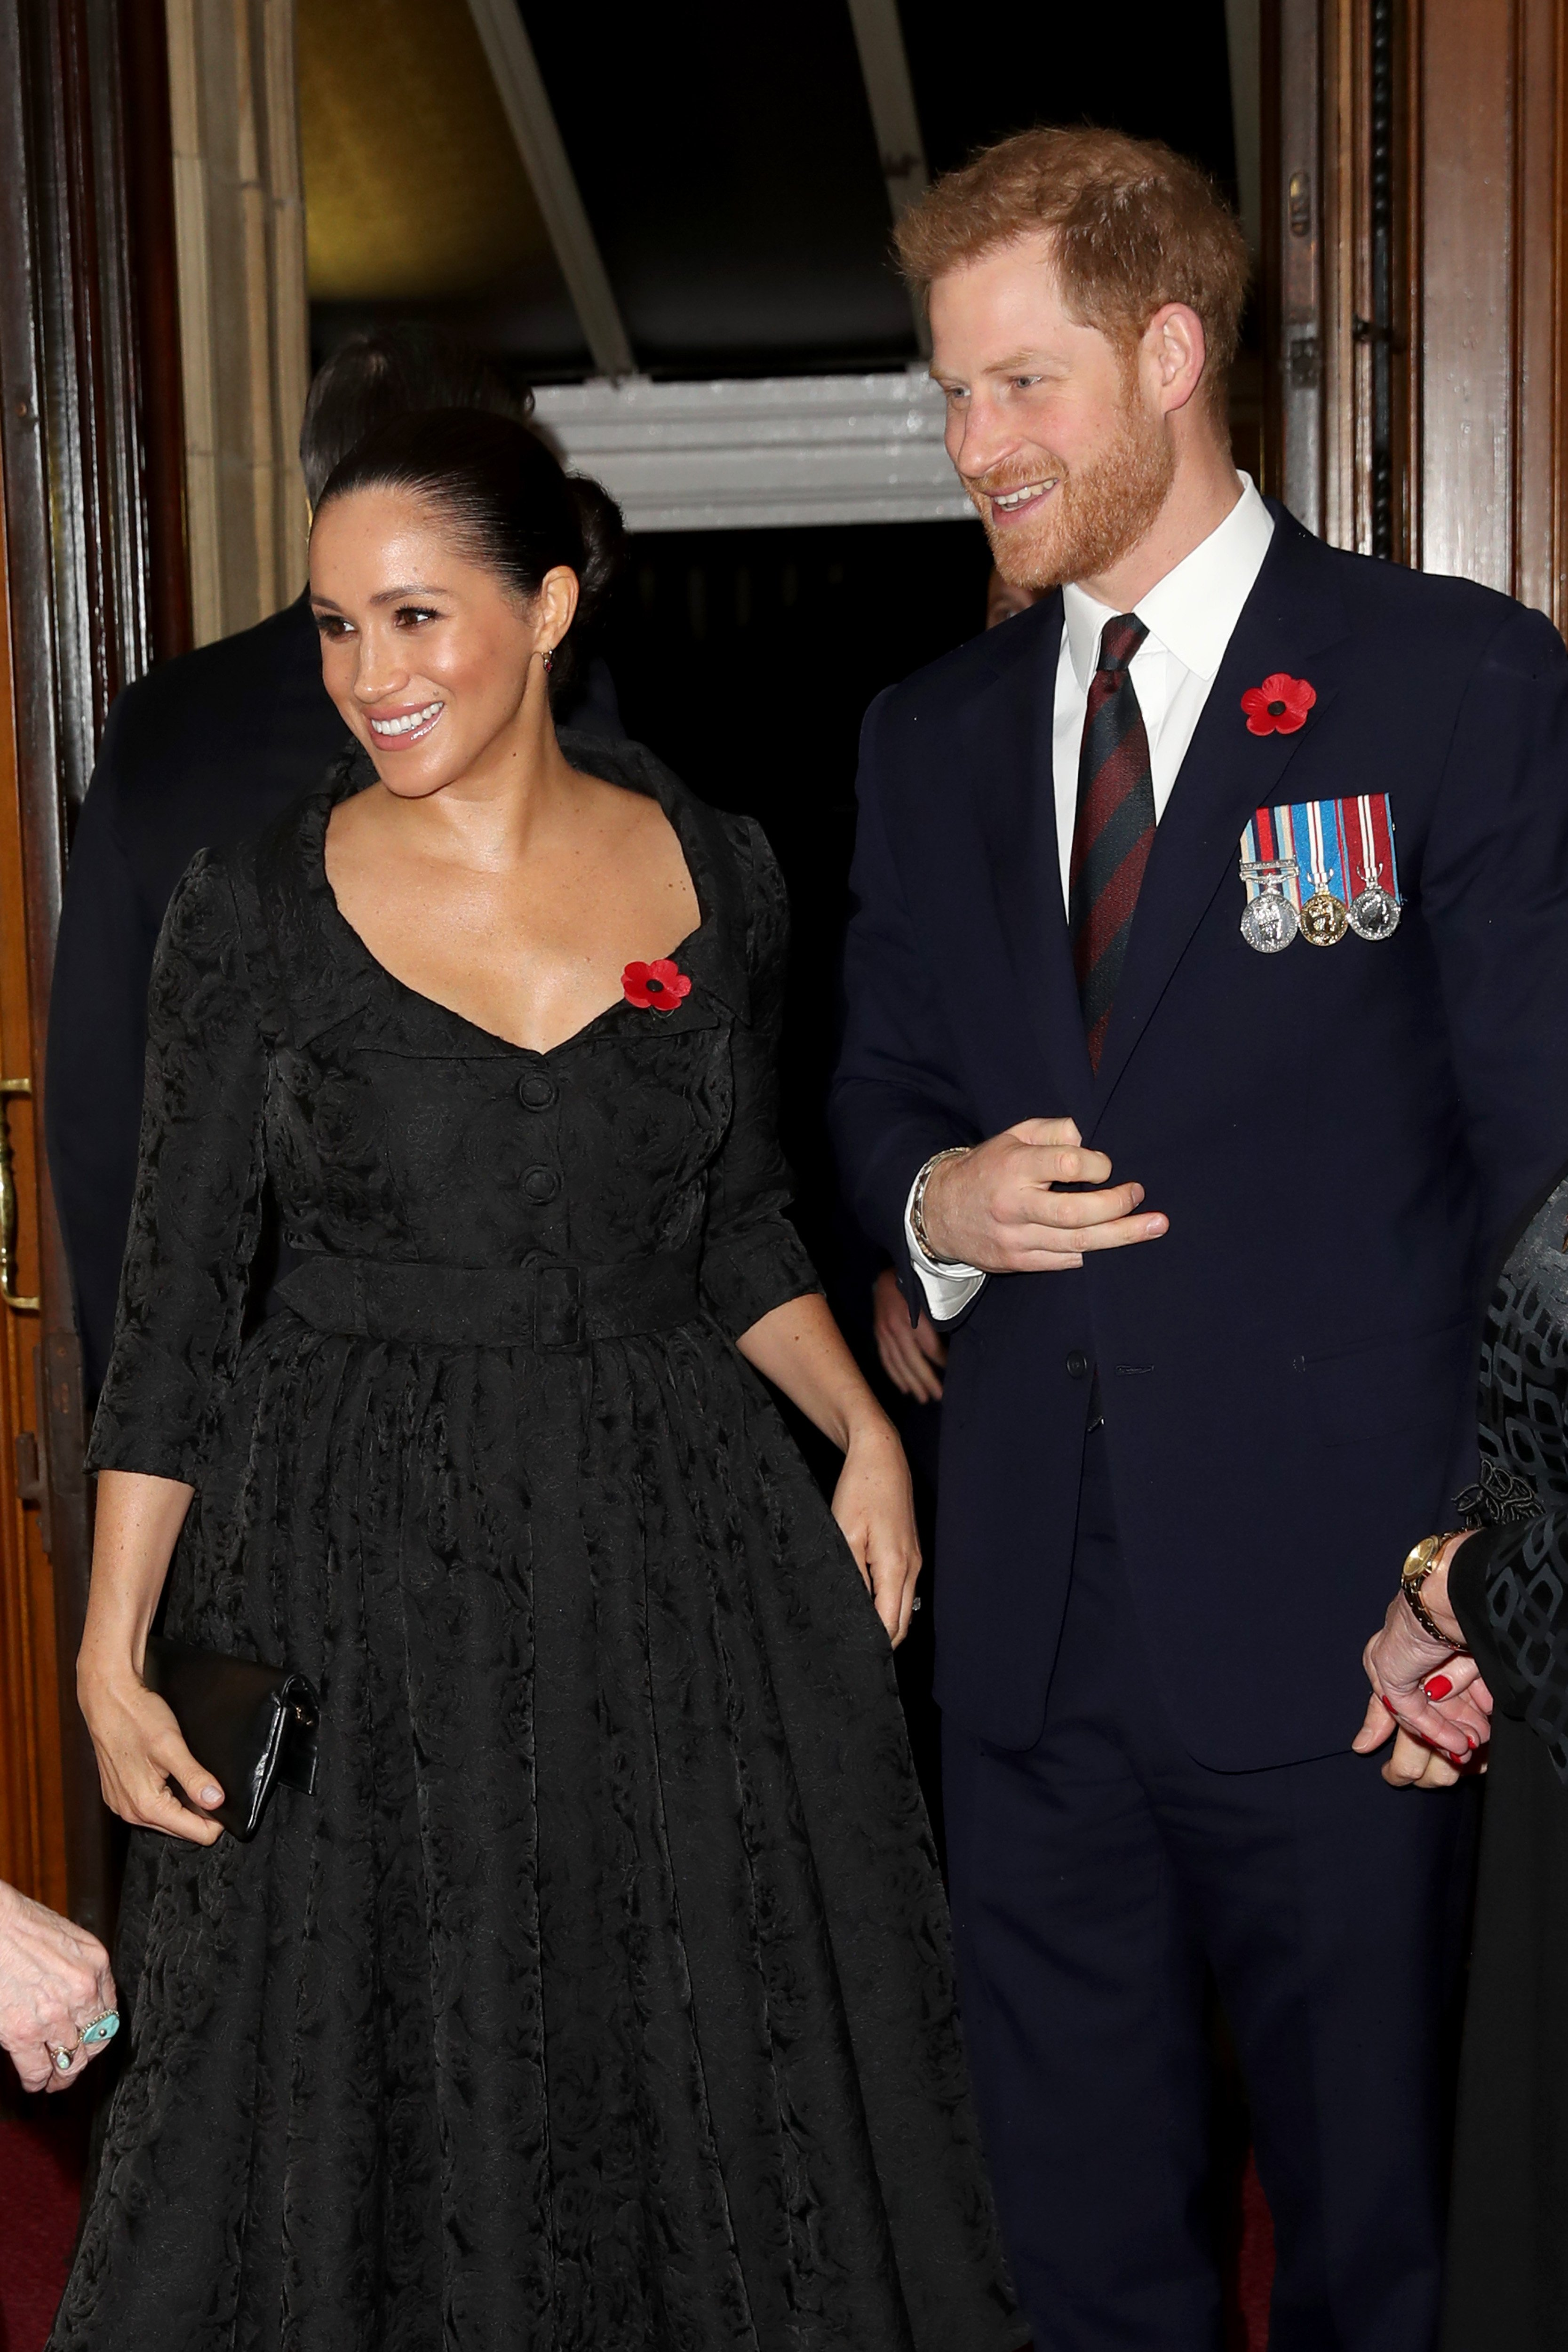 Meghan, Duchess of Sussex and Prince Harry, Duke of Sussex attend the annual Royal British Legion Festival of Remembrance at the Royal Albert Hall on November 09, 2019, in London, England. | Source: Getty Images.